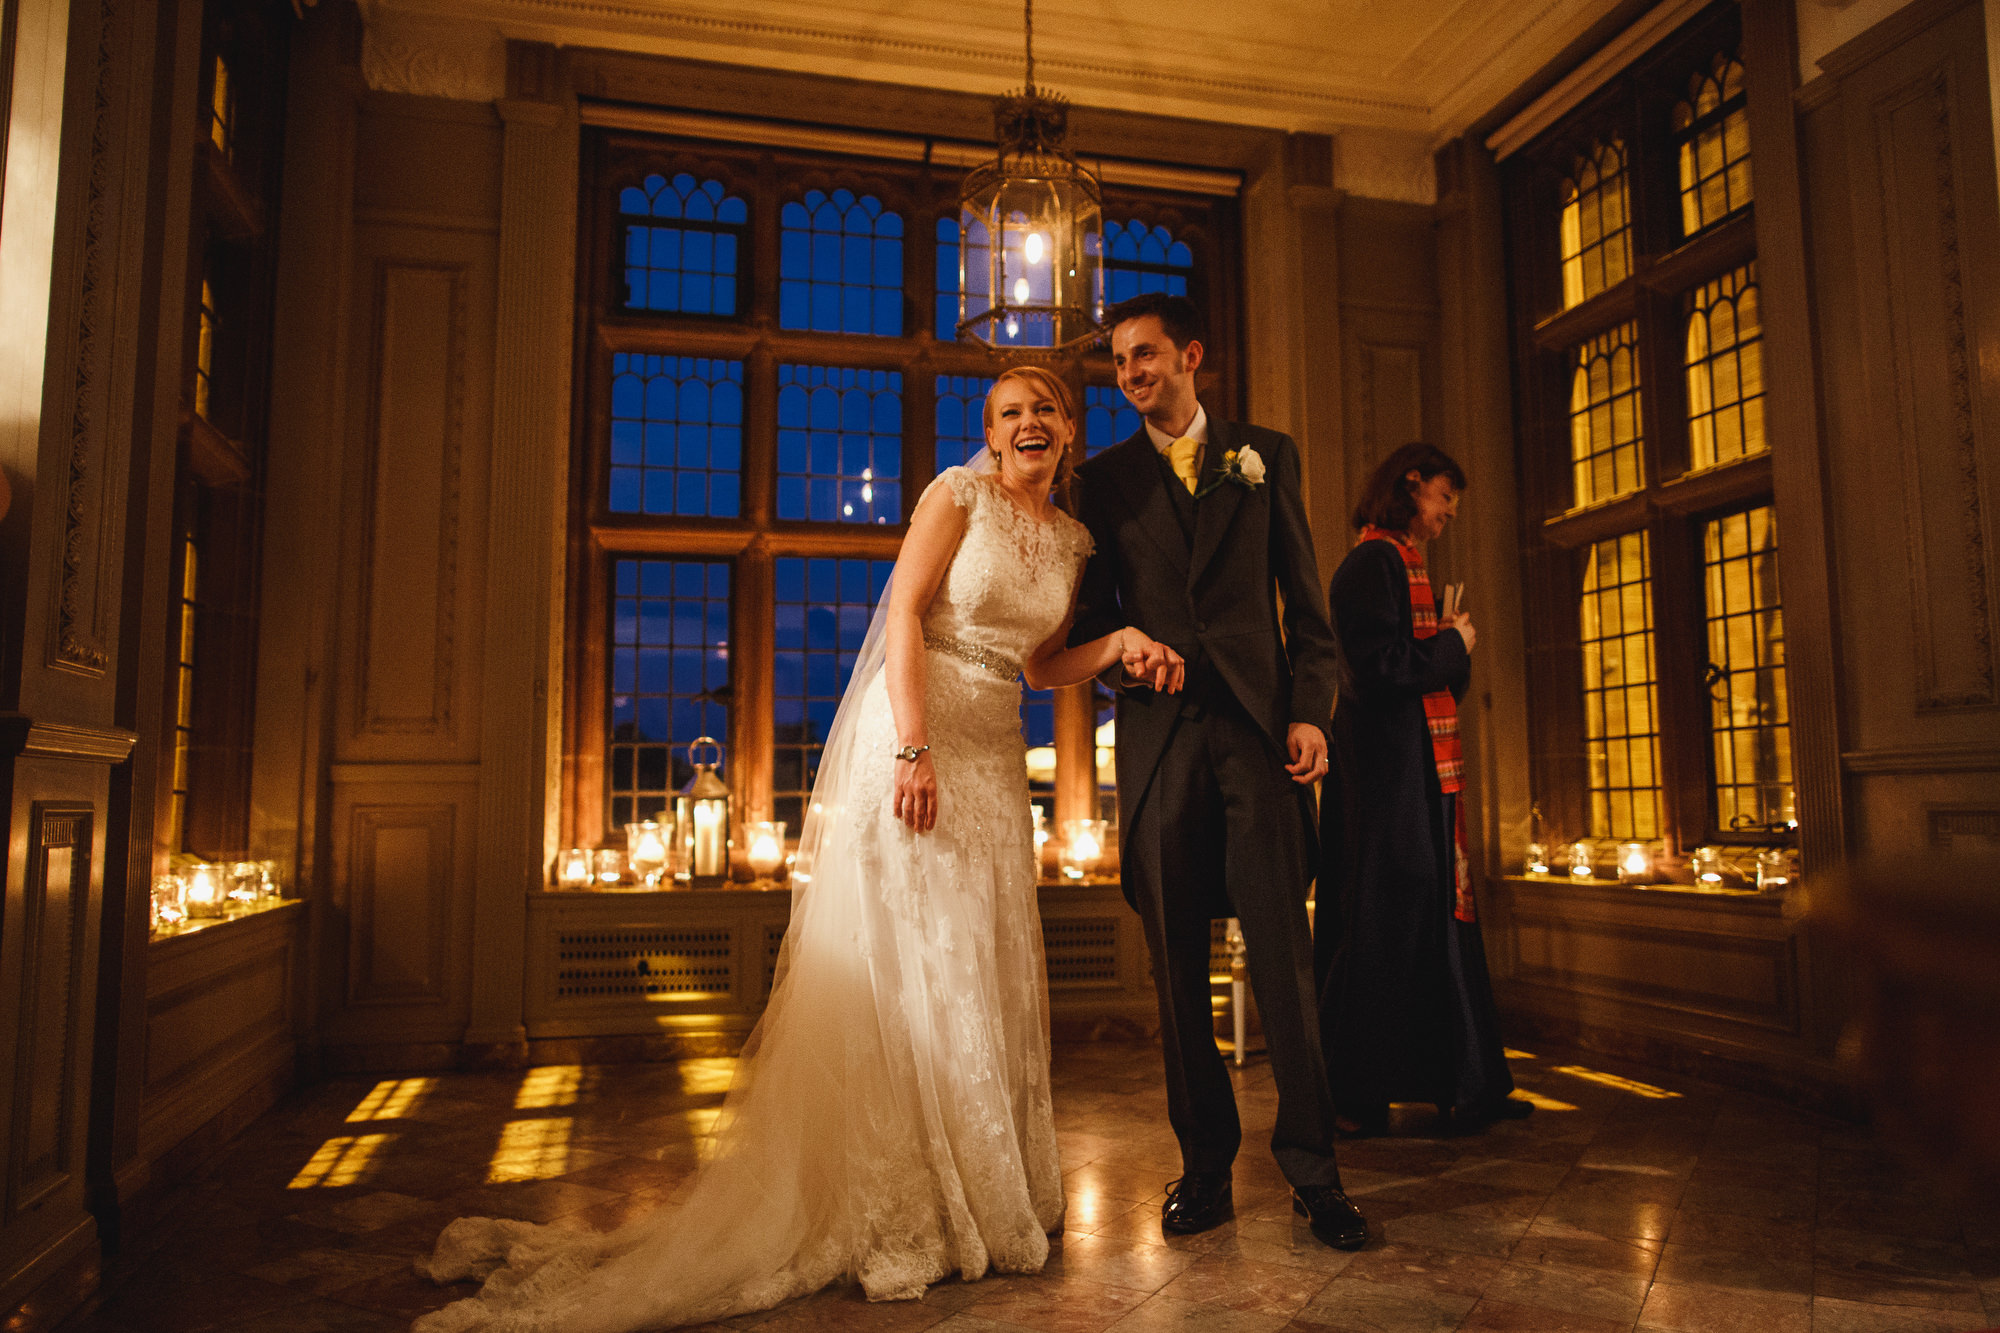 thornton-manor-wedding-photography-sarah-rich-61